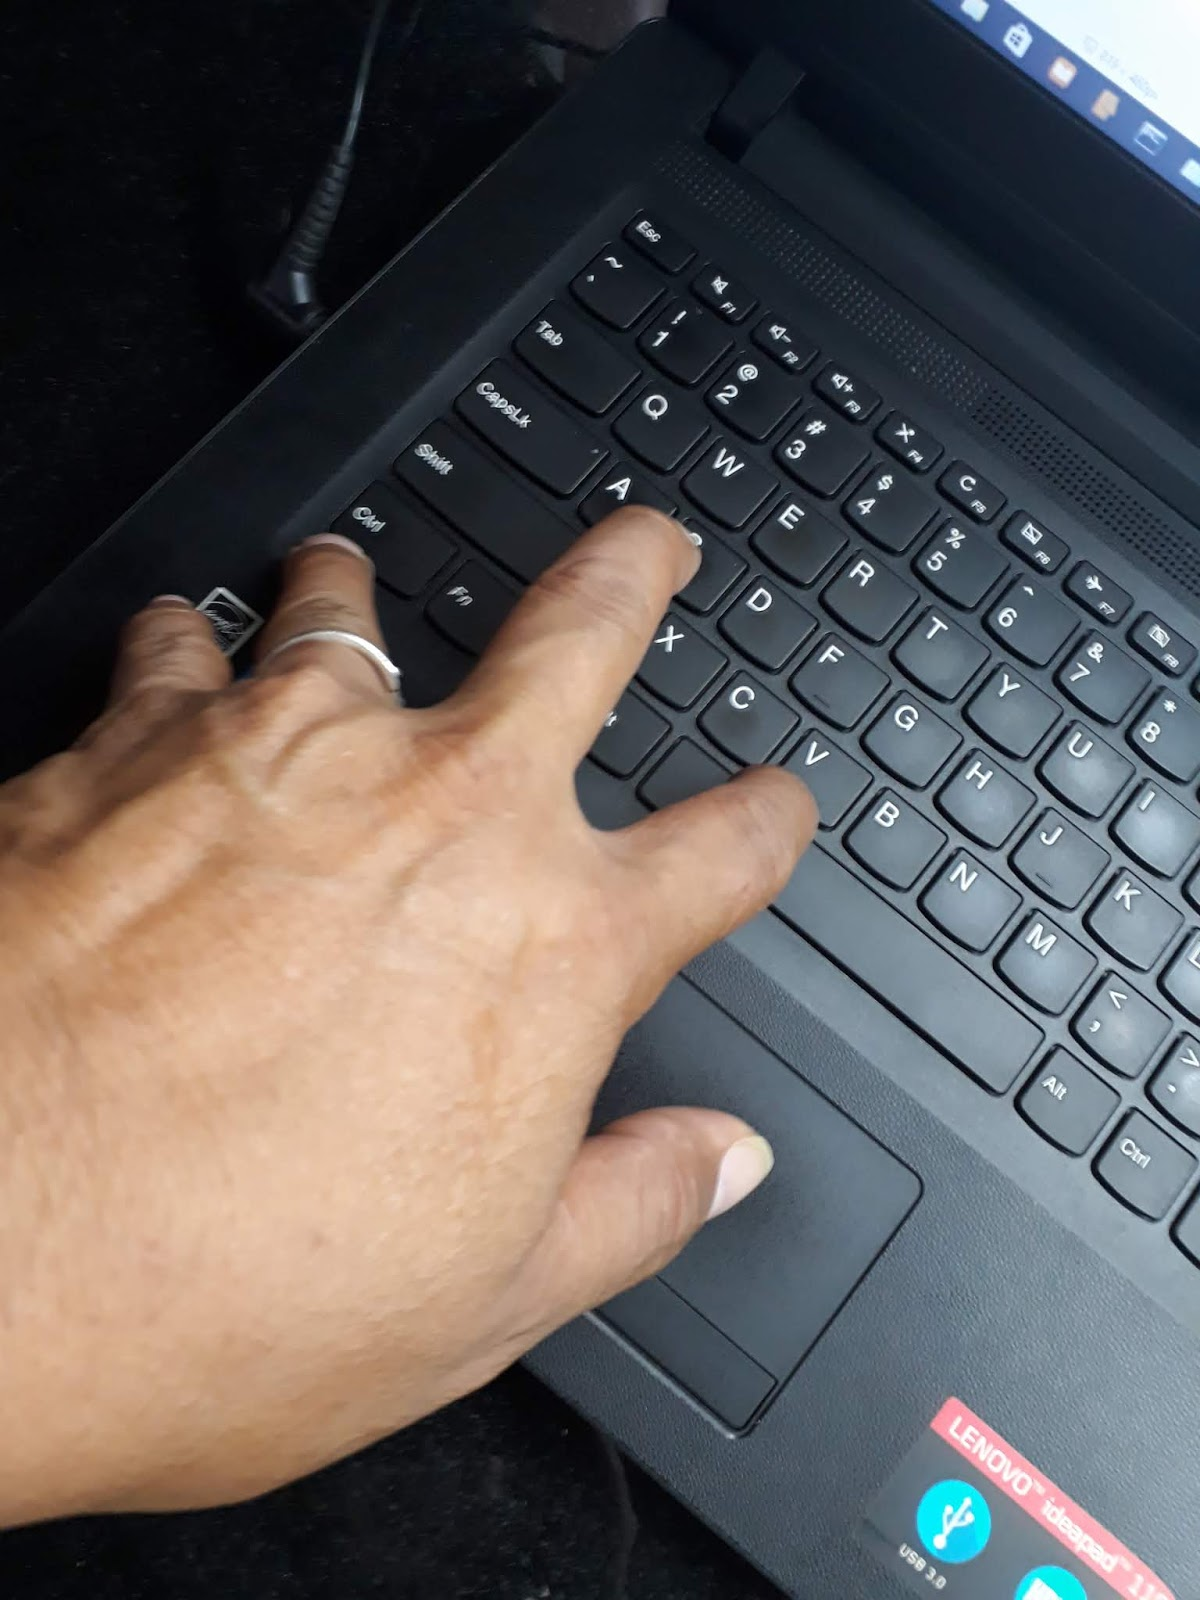 how to use the printscreen button on keyboard